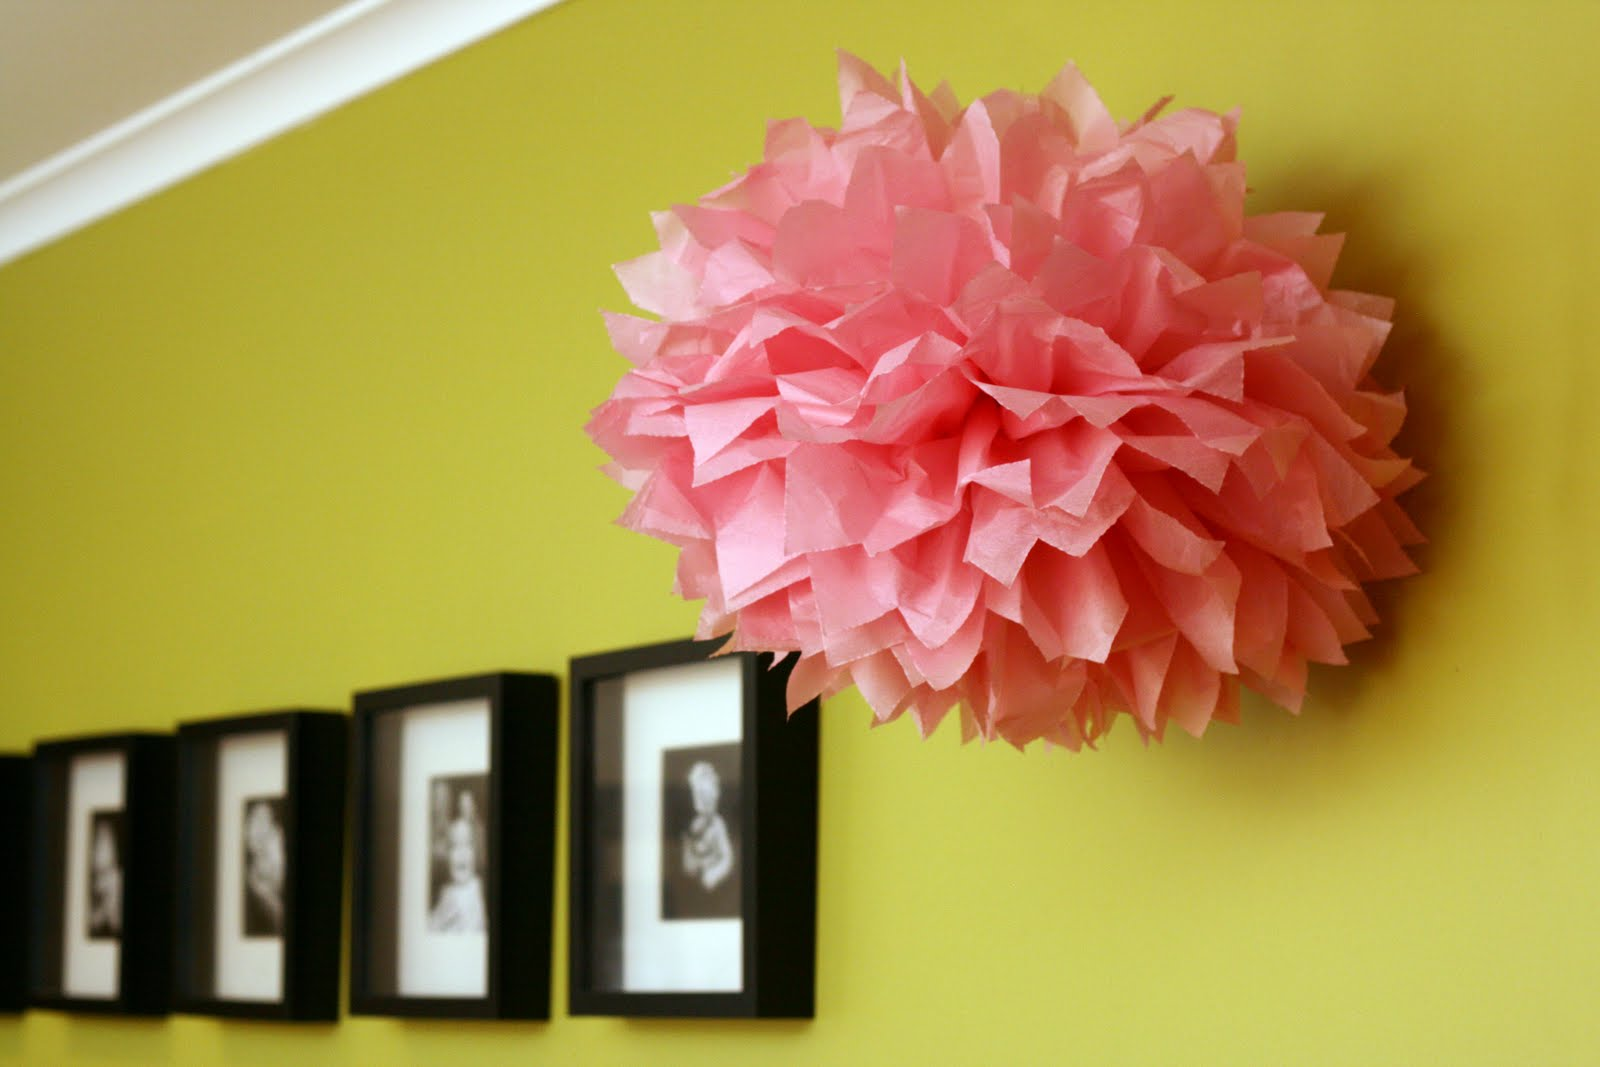 Rachelle rachelle tissue paper pom pom tutorial for Hanging pom poms from ceiling